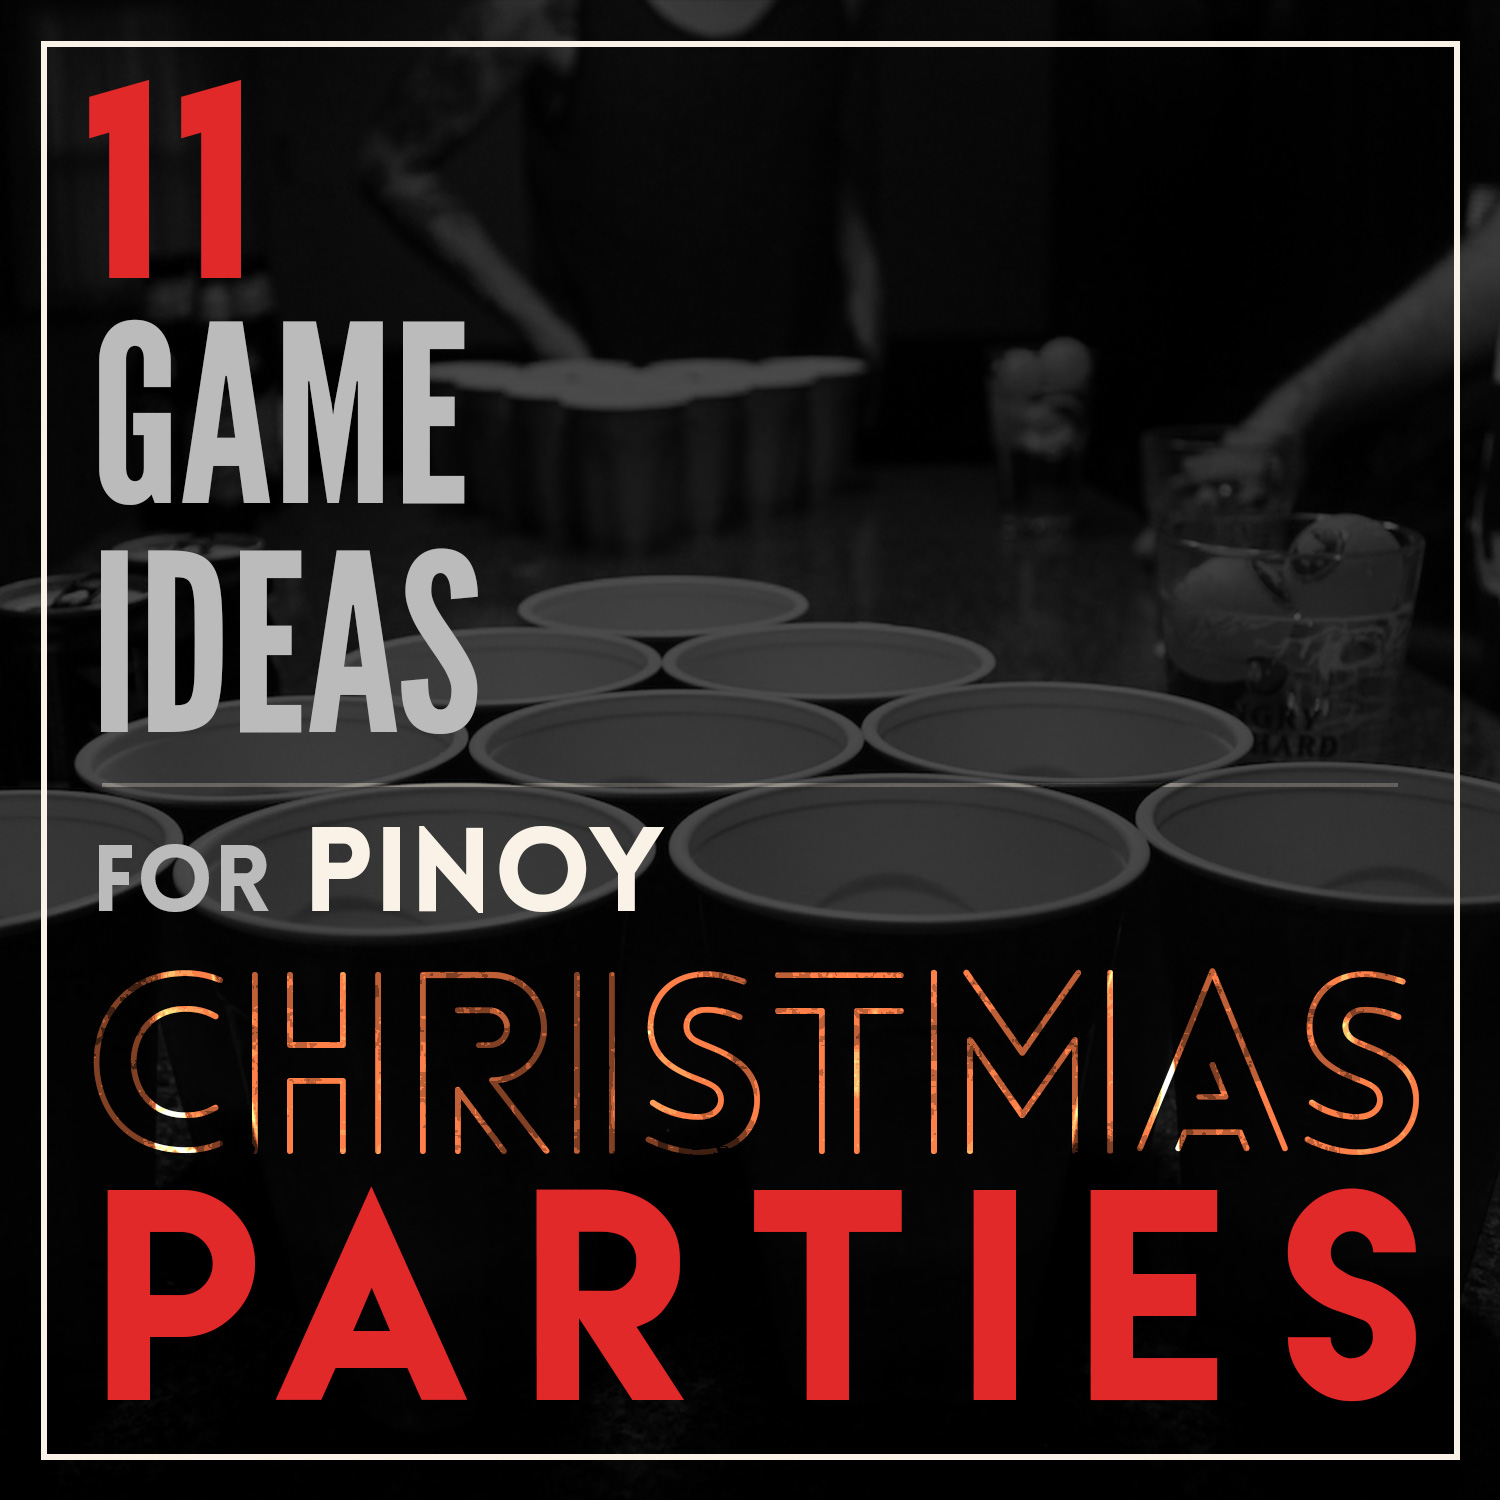 11 Game Ideas for Pinoy Christmas Parties | Blog | Professional ...